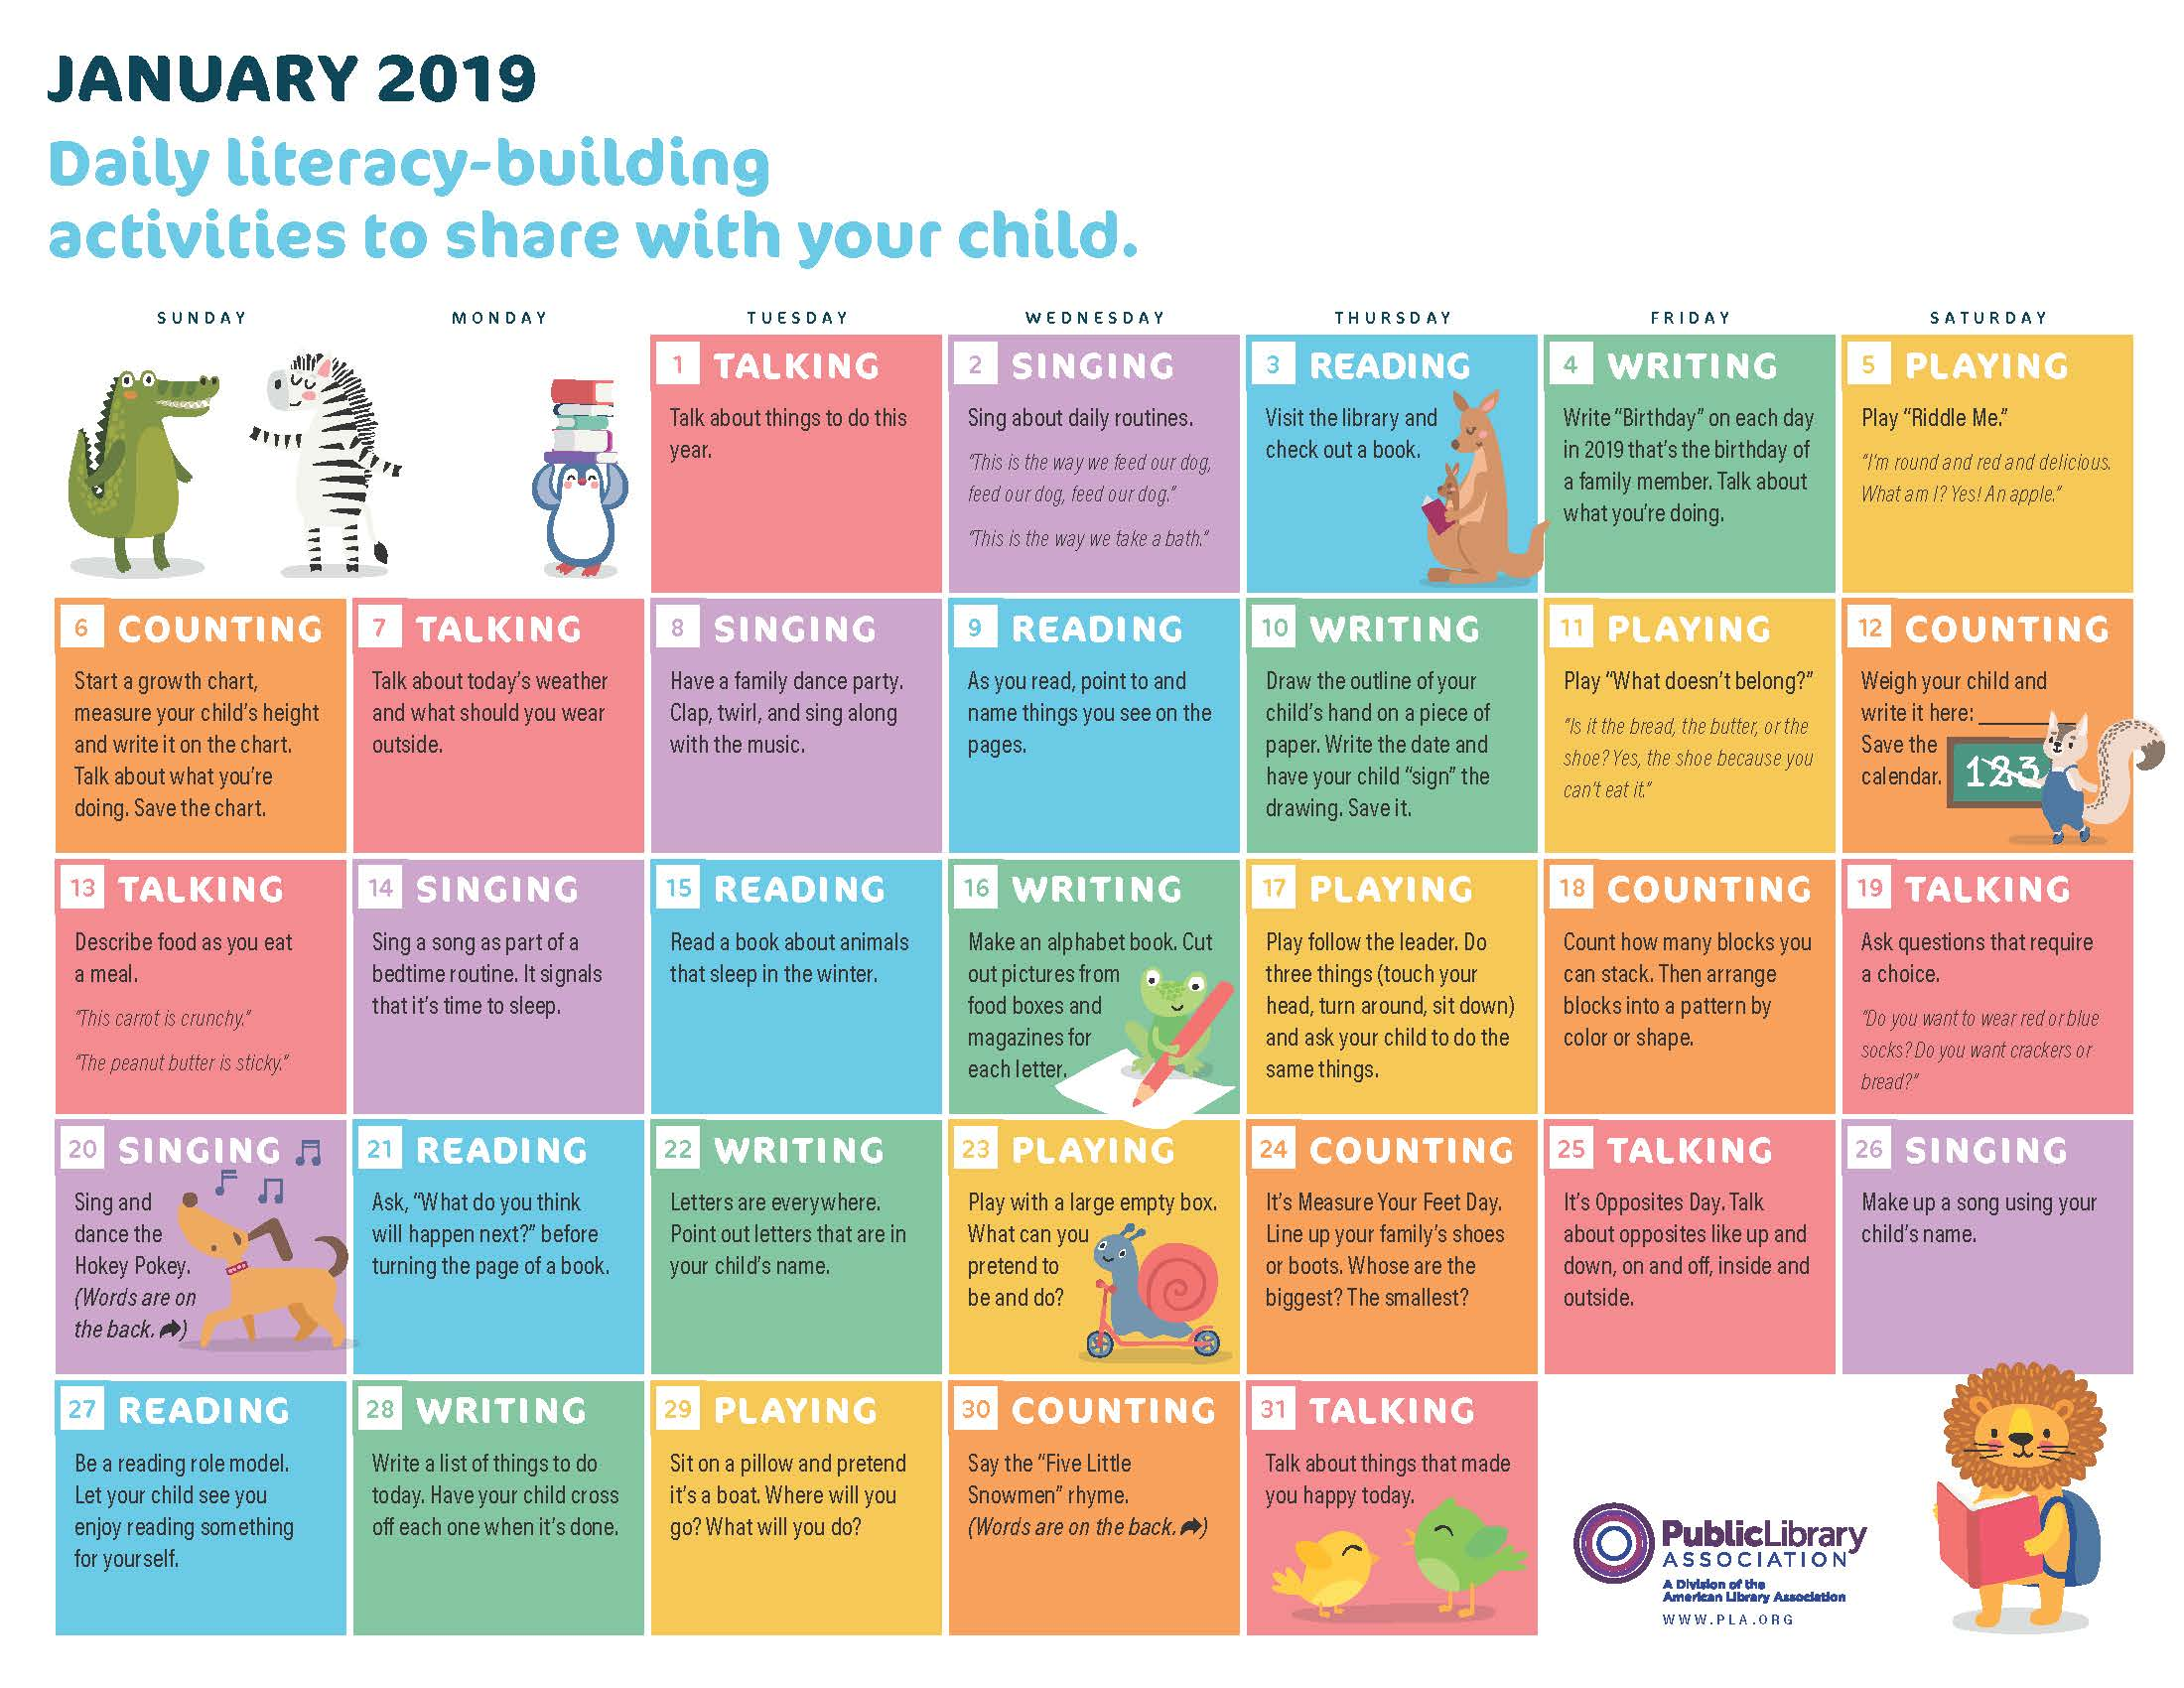 cover image for PLA 2019 Early Literacy Activities Calendar